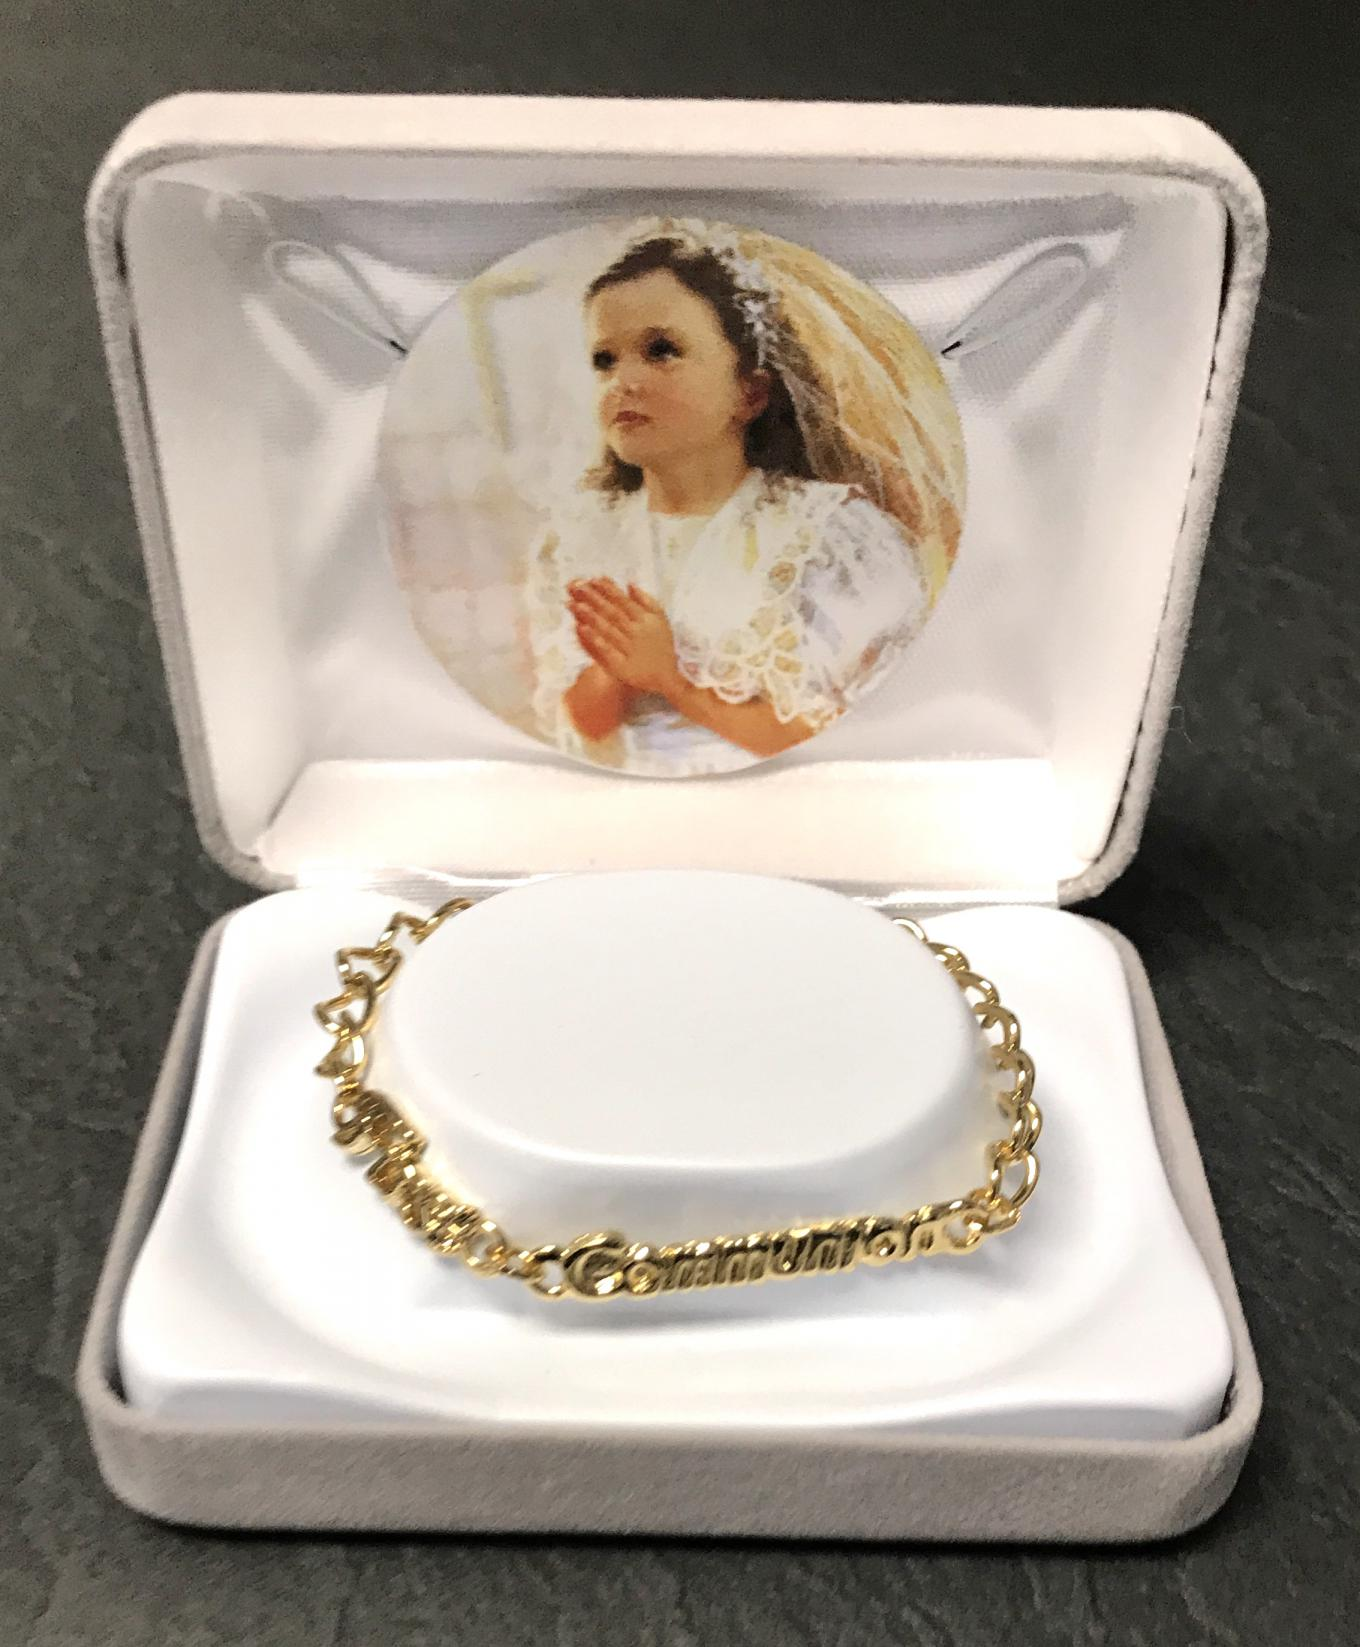 GOLD FIRST COMMUNION BRACELET GIFT BOXED